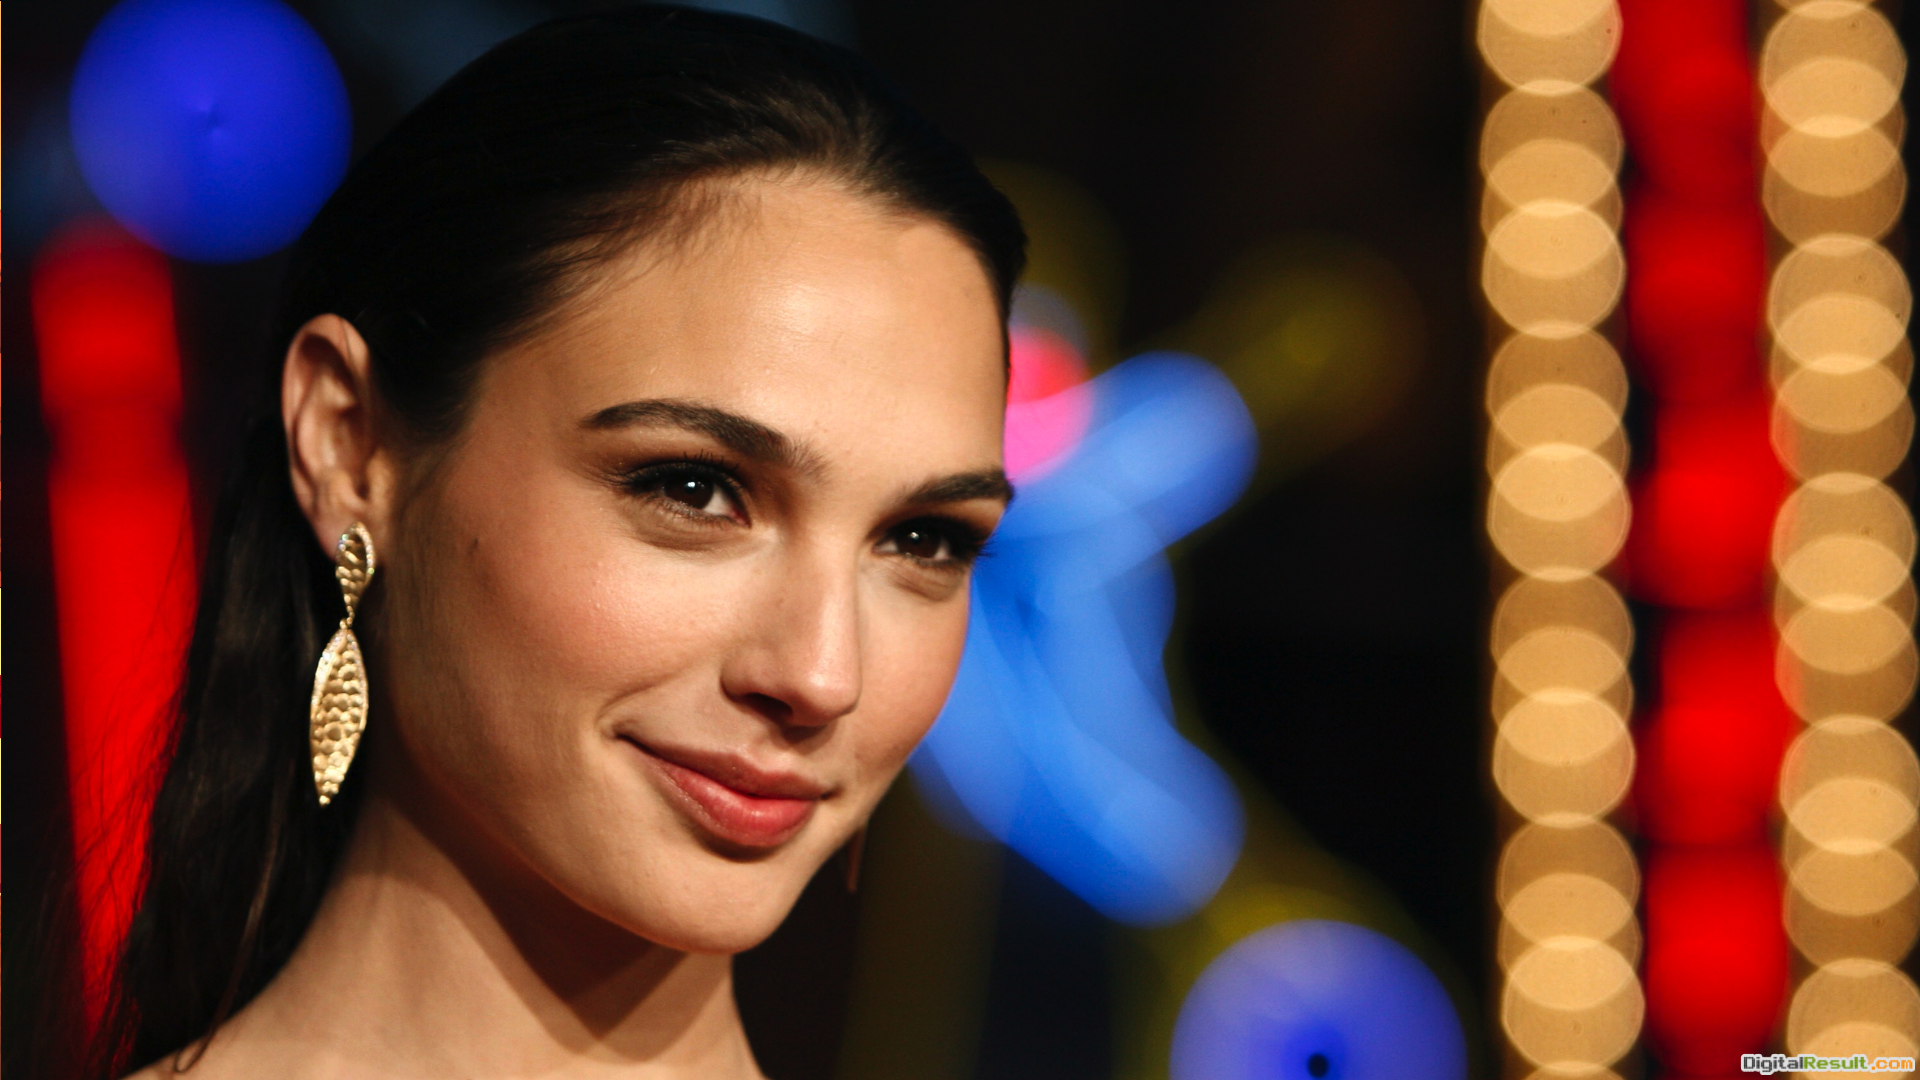 Gal Gadot HD Wallpaper FreeDownload Gal Gadot HD Wallpaper 1531